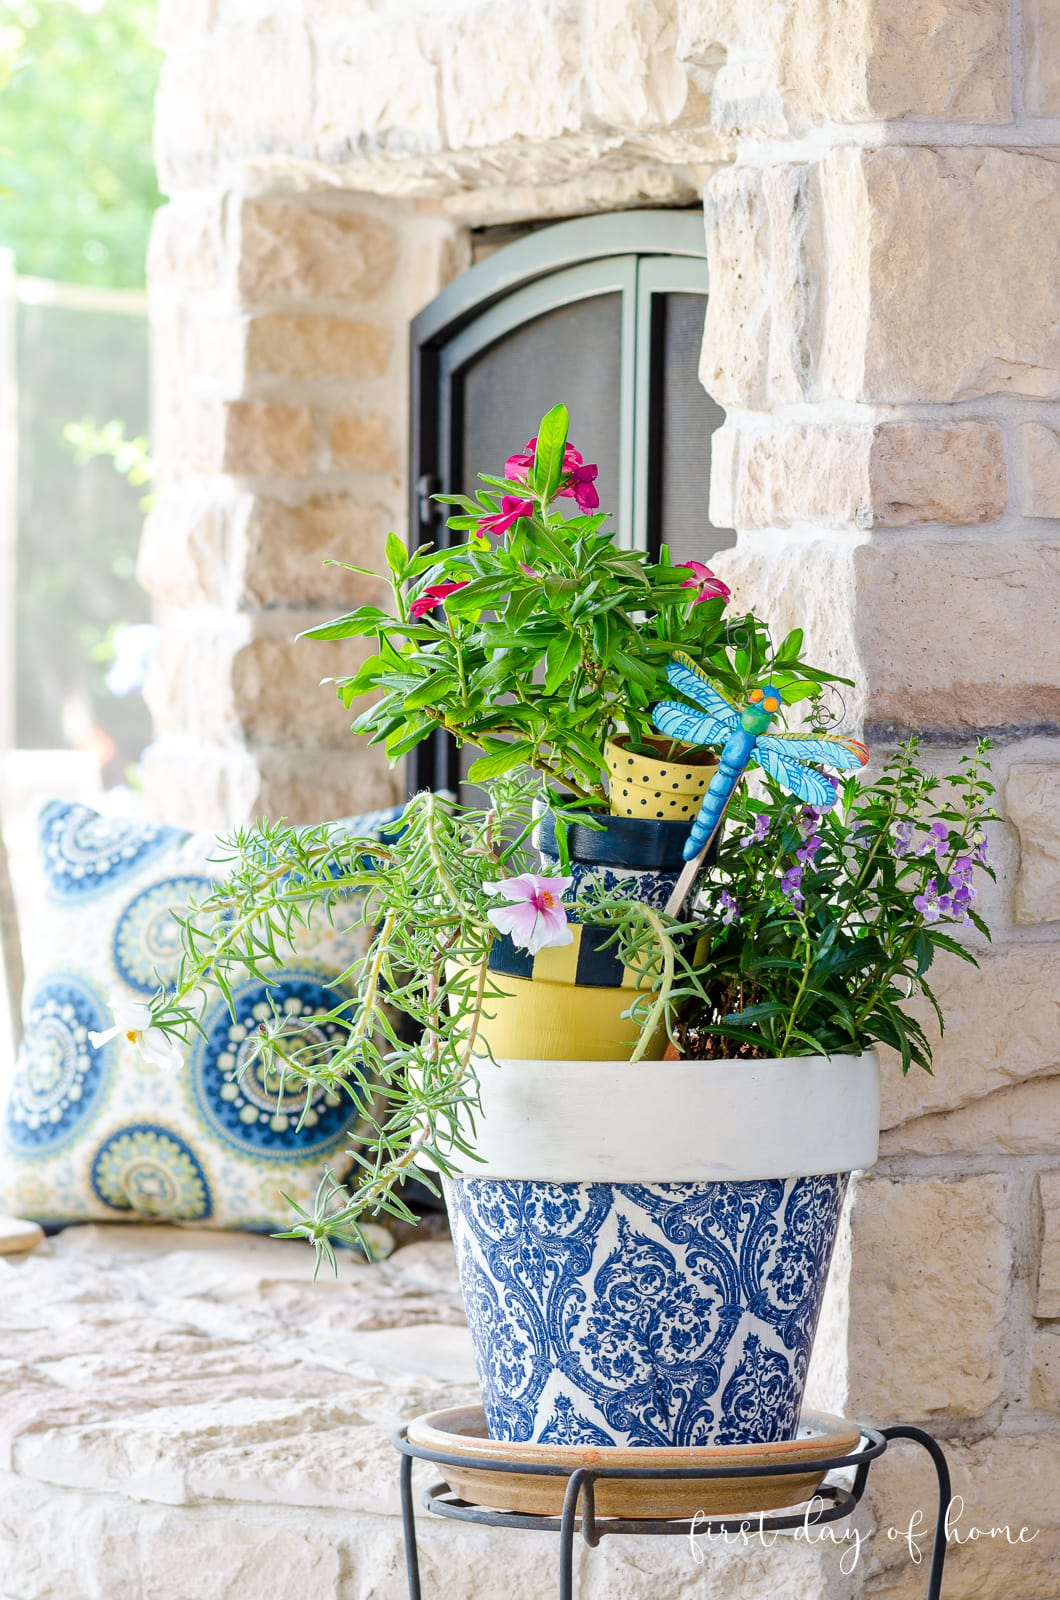 How To Decoupage Flower Pots With Stunning Results